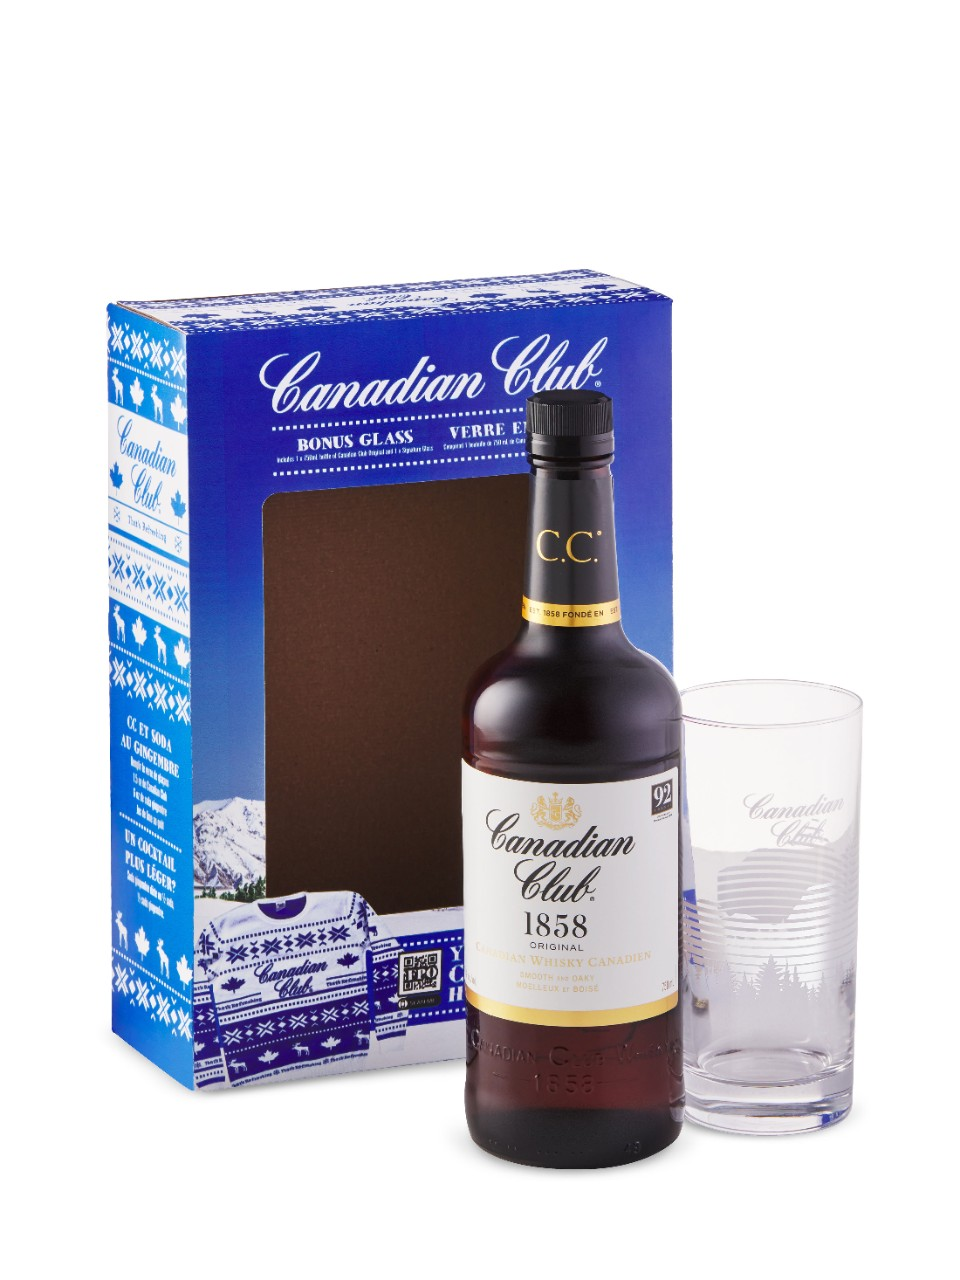 Canadian Club 1858 Gift Box with Signature Glass from LCBO